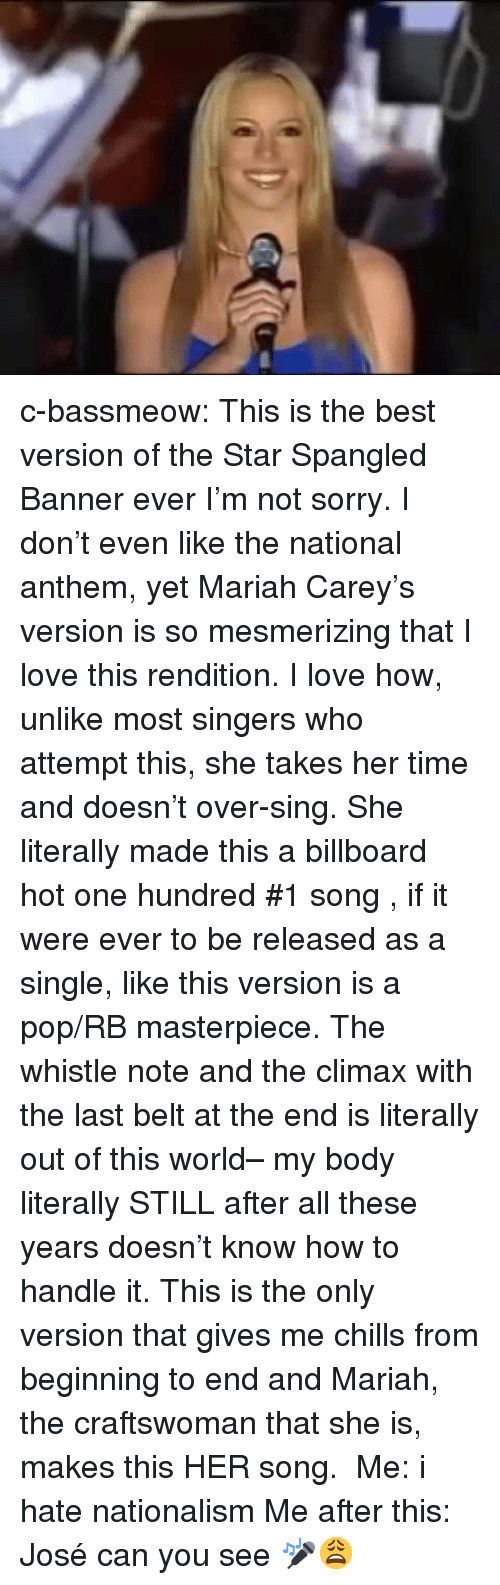 whistle: c-bassmeow:  This is the best version of the Star Spangled Banner ever I'm not sorry. I don't even like the national anthem, yet Mariah Carey's version is so mesmerizing that I love this rendition. I love how, unlike most singers who attempt this, she takes her time and doesn't over-sing. She literally made this a billboard hot one hundred #1 song , if it were ever to be released as a single, like this version is a pop/RB masterpiece. The whistle note and the climax with the last belt at the end is literally out of this world– my body literally STILL after all these years doesn't know how to handle it. This is the only version that gives me chills from beginning to end and Mariah, the craftswoman that she is, makes this HER song.  Me: i hate nationalism Me after this: José can you see 🎤😩